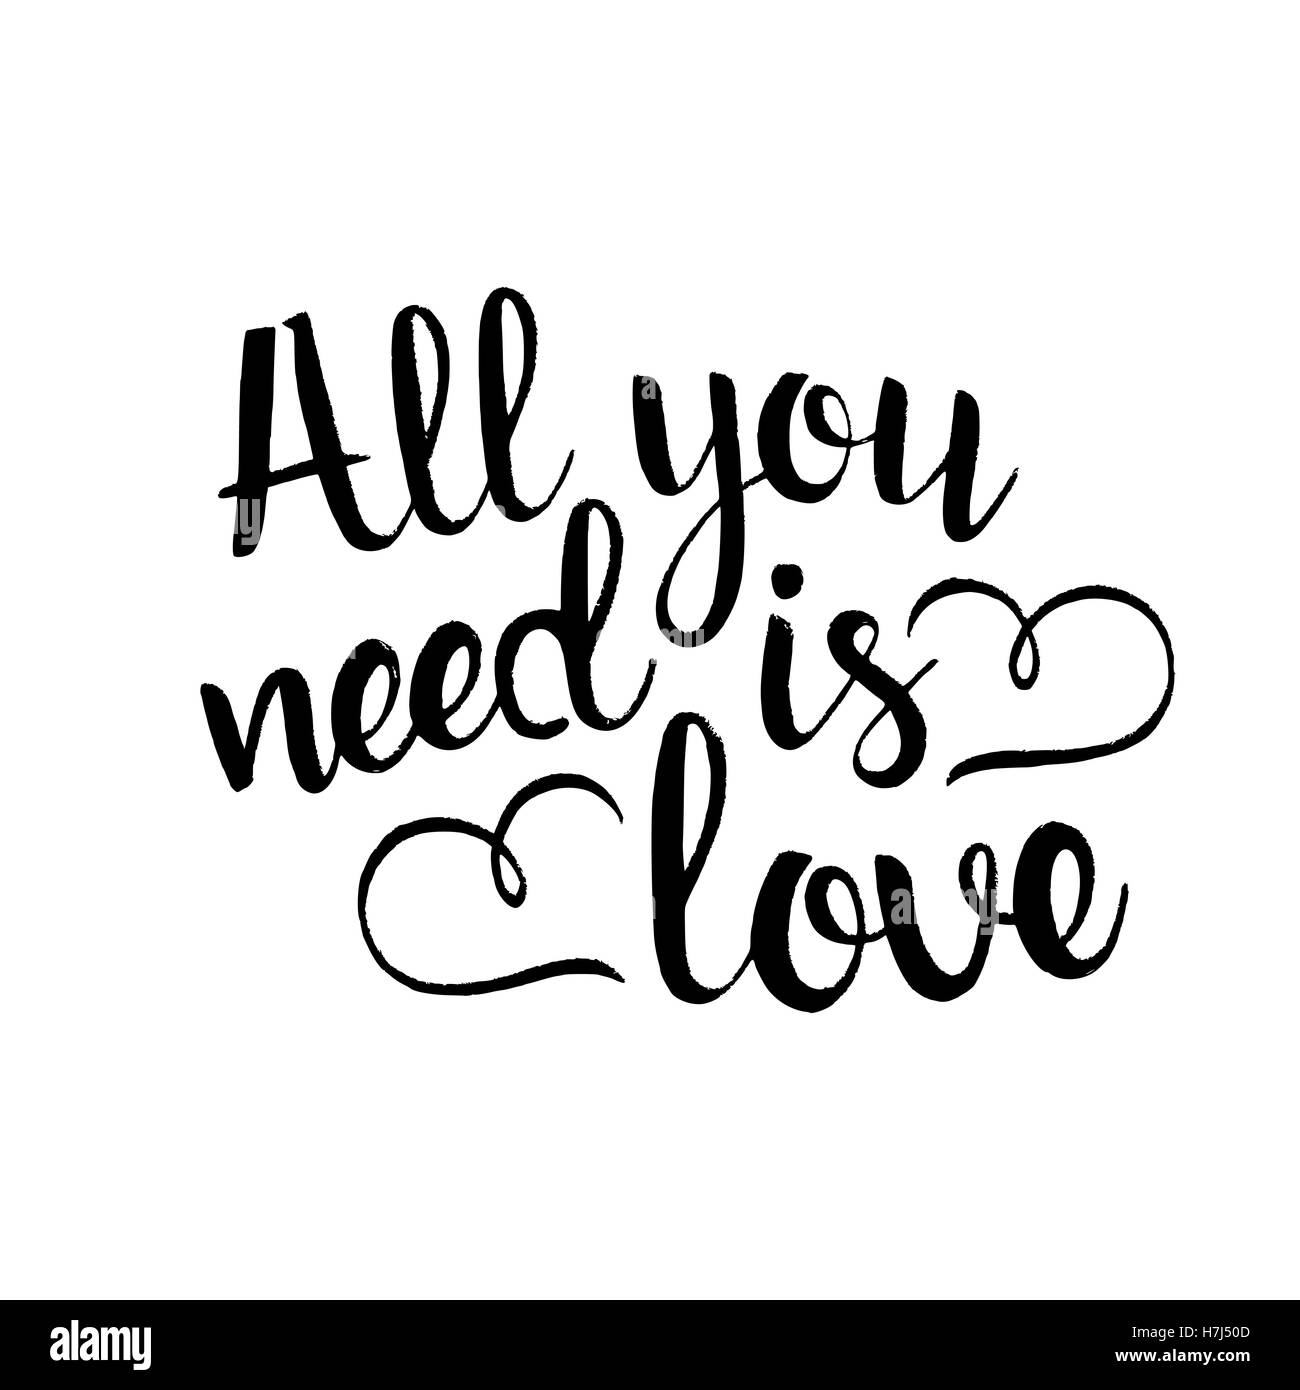 All you need is love handwritten lettering. Happy Valentine's Day. Inspirational phrase. Modern vector hand drawn calligraphy Stock Vector